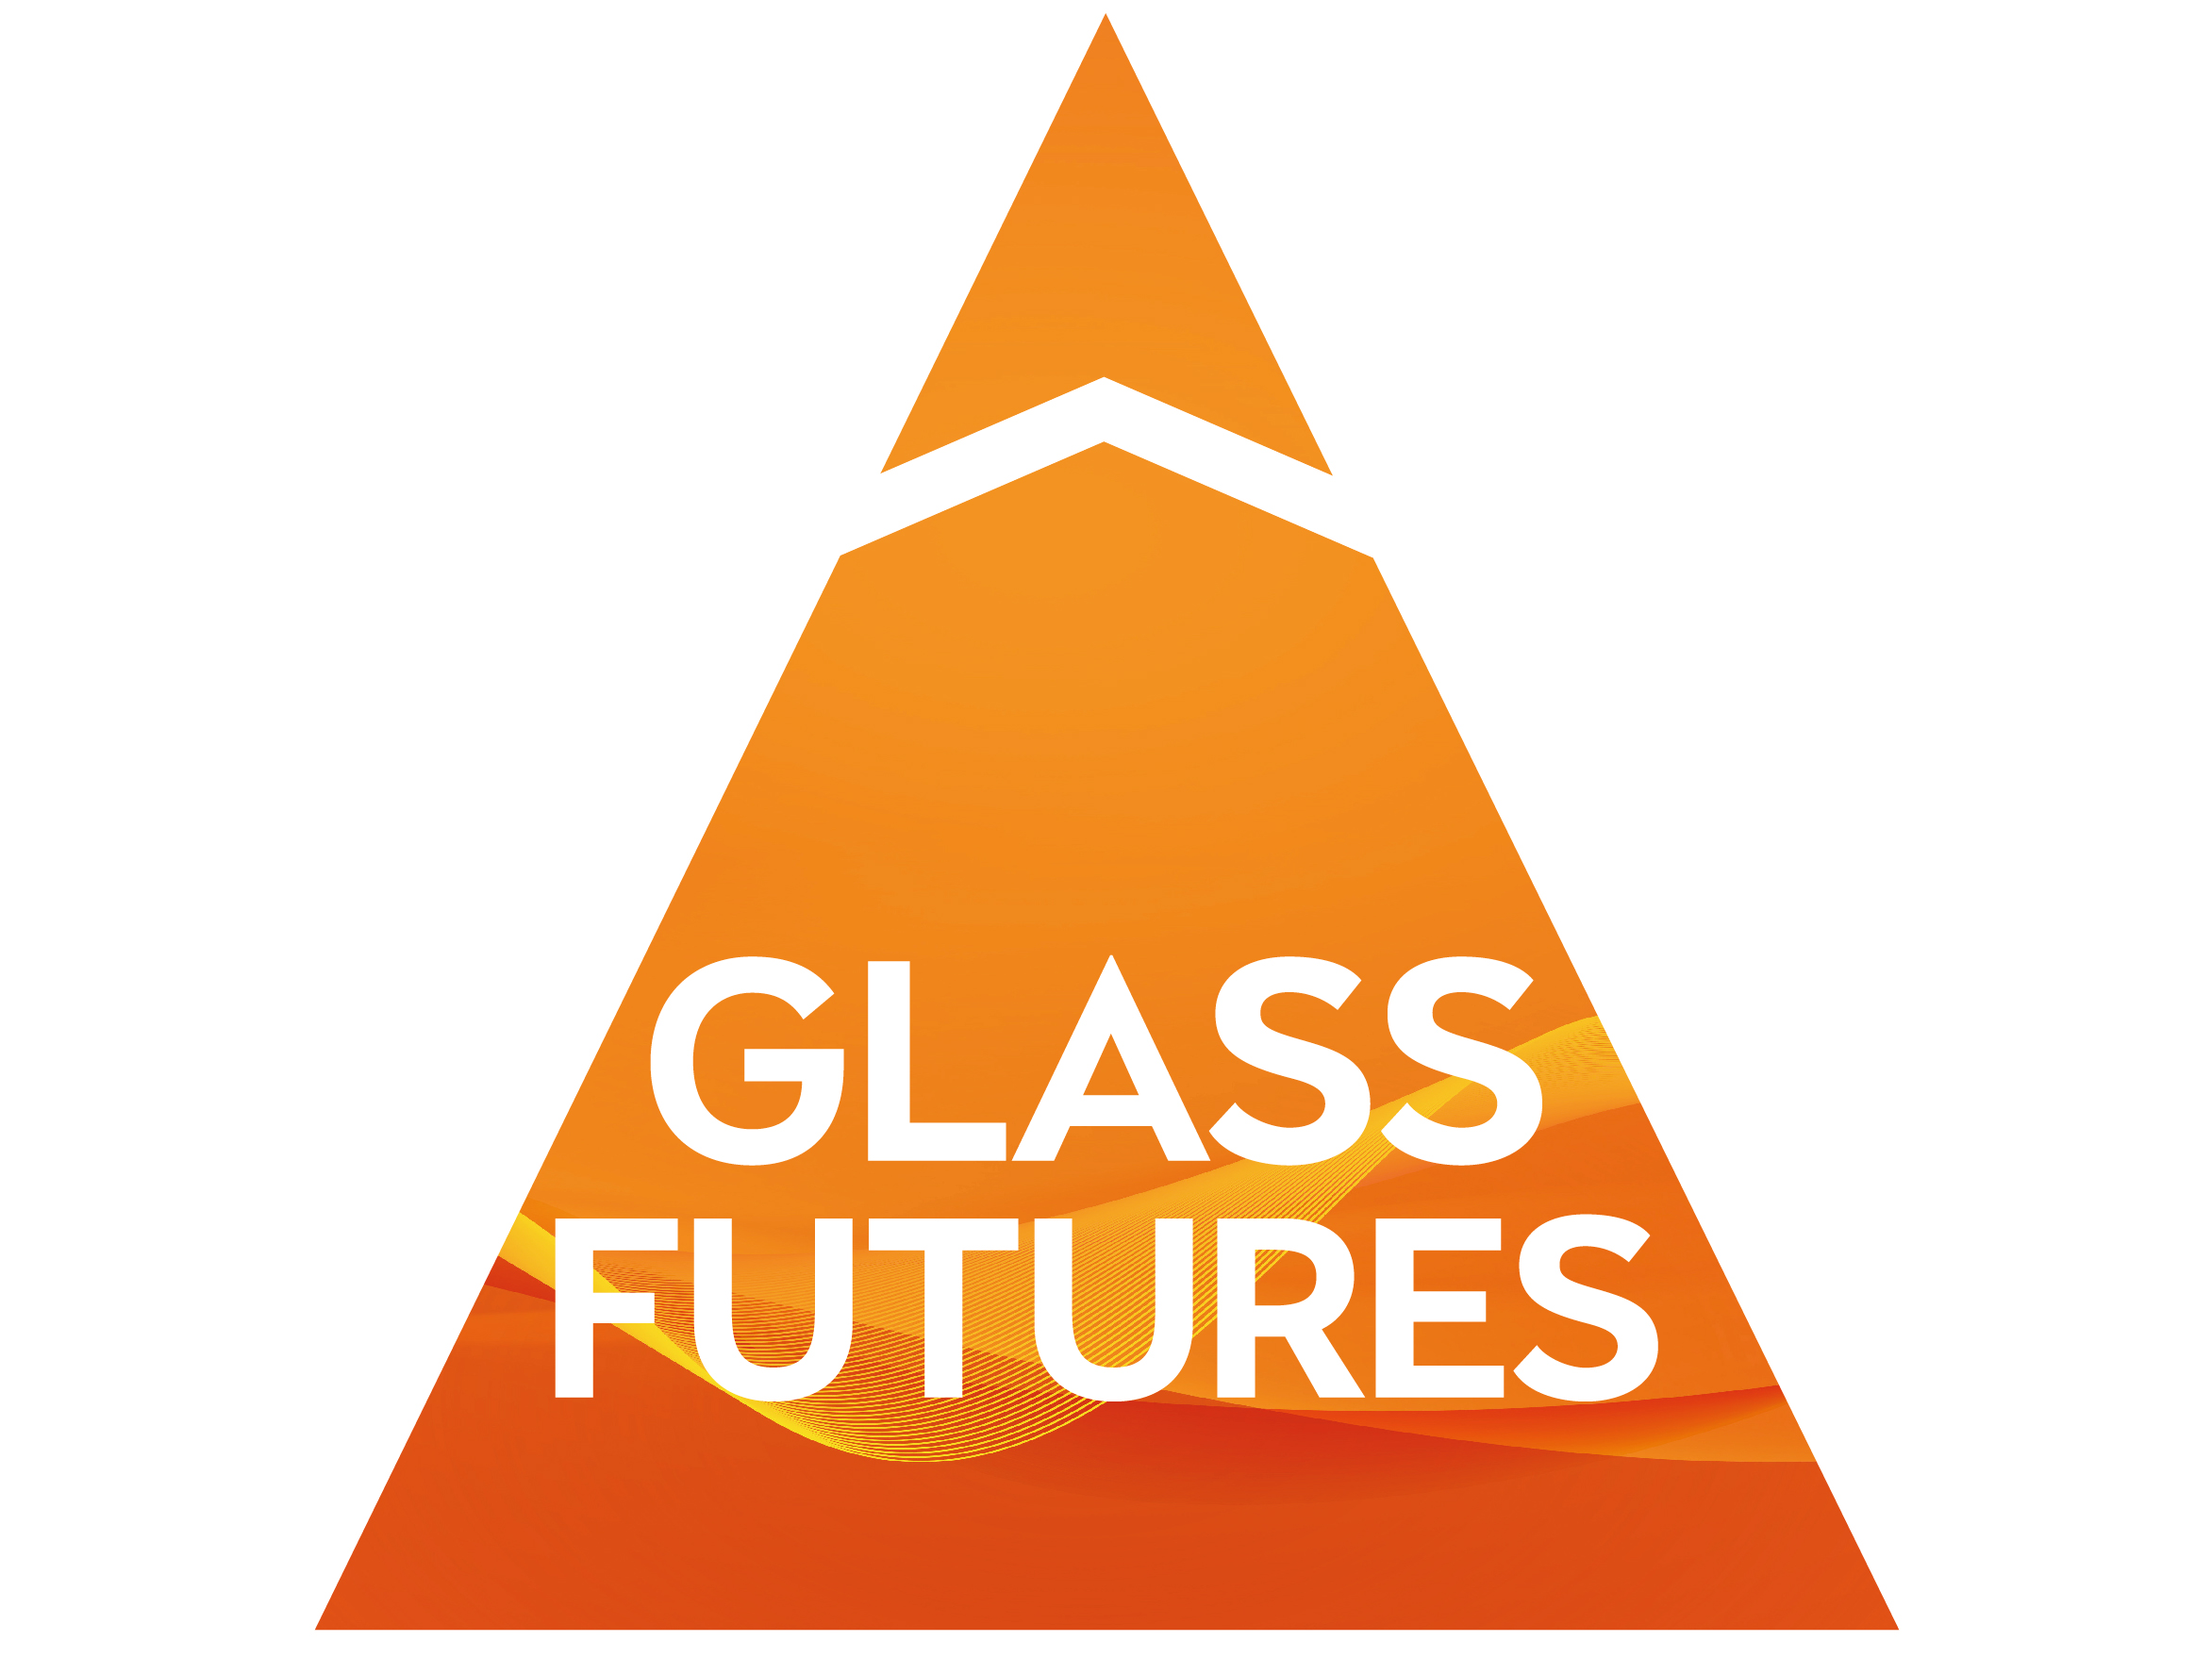 Glass Futures logo